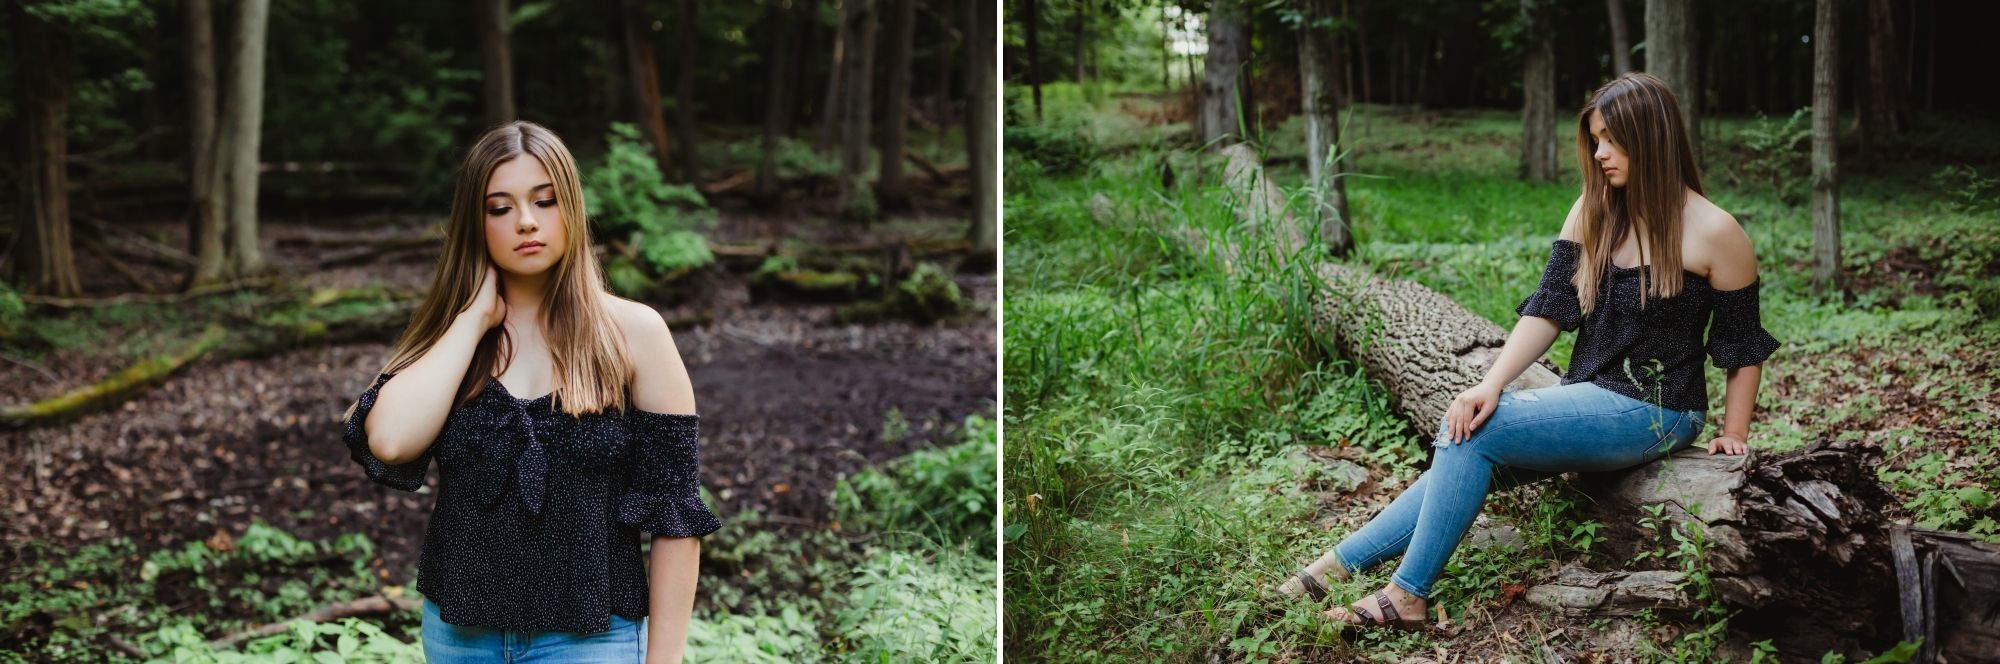 Two photos of a high school senior girl in the woods. She is wearing a black shirt and jeans. She is sitting on a log.